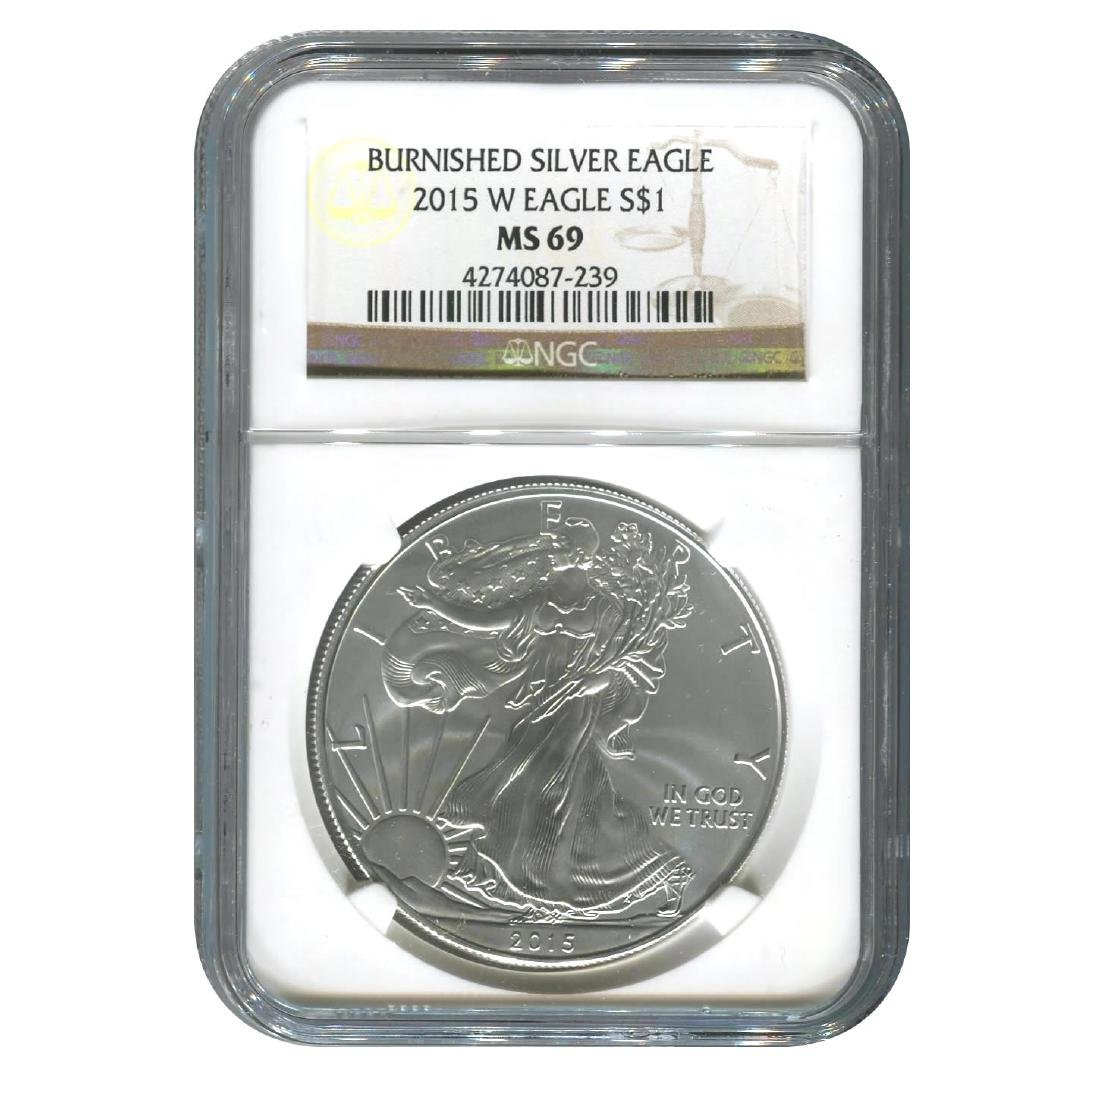 Burnished 2015-W Silver Eagle MS69 NGC